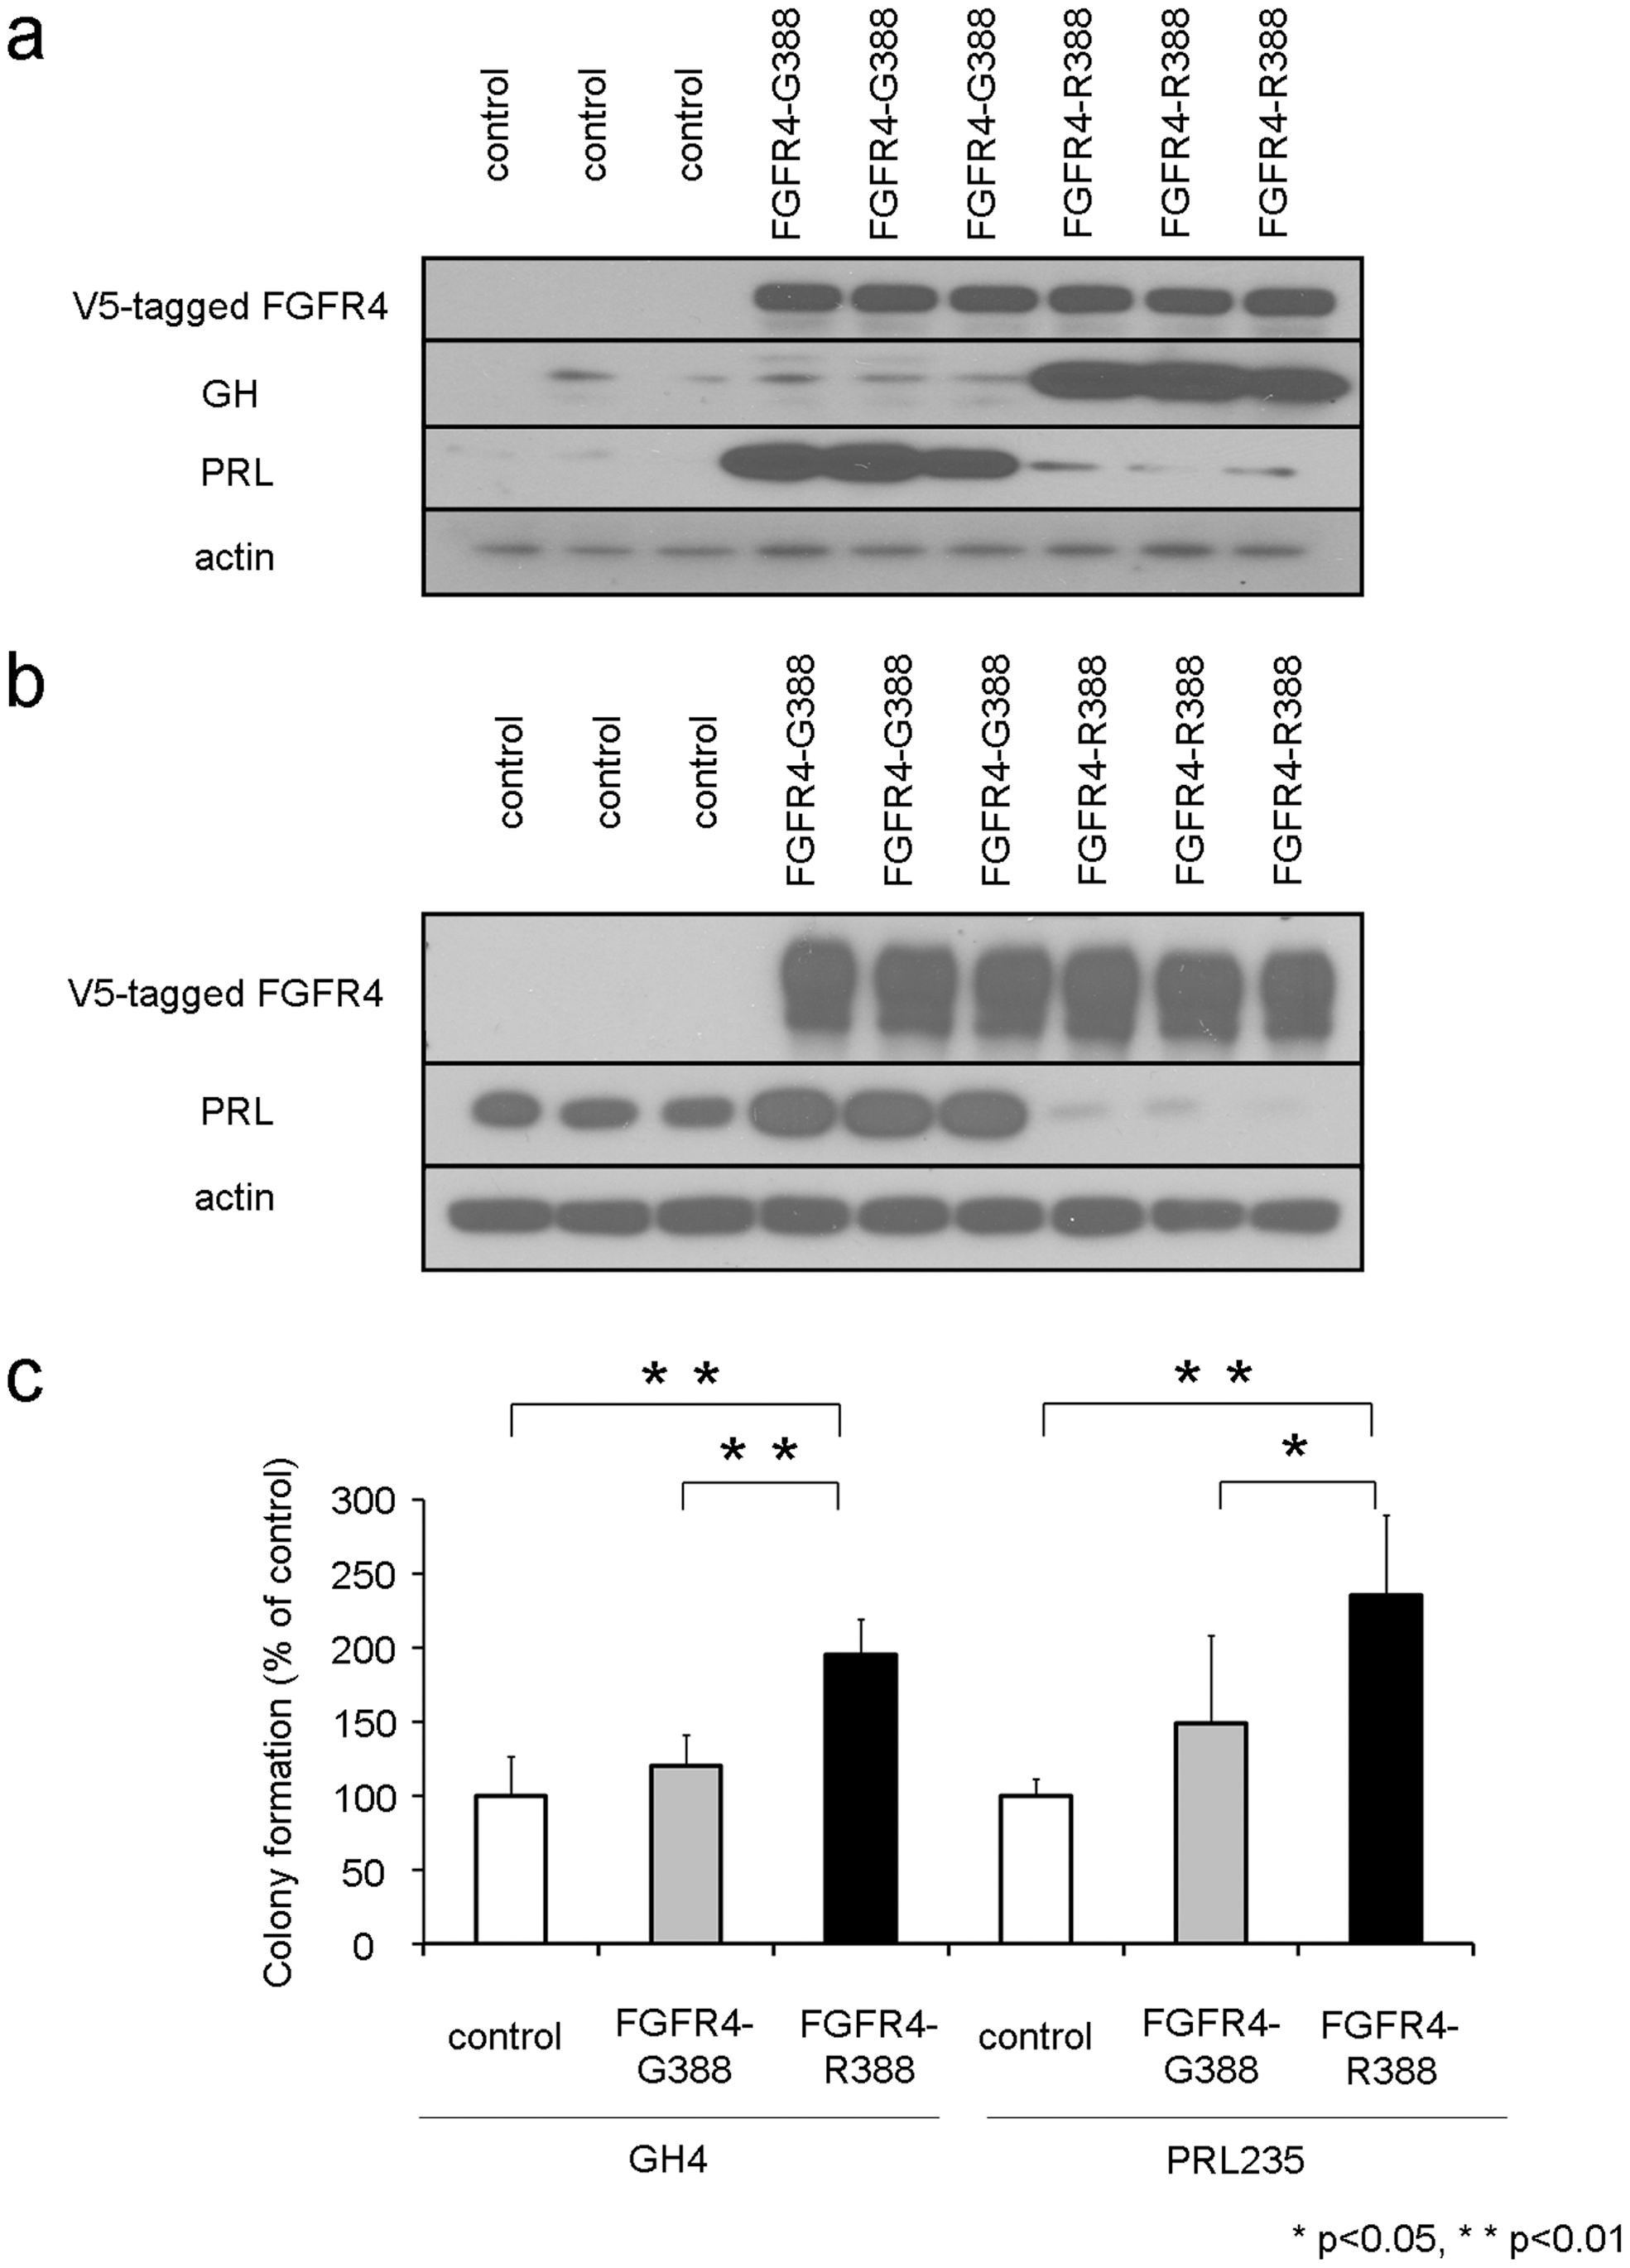 The FGFR4-R388 polymorphism deregulates pituitary hormone production and cell growth.